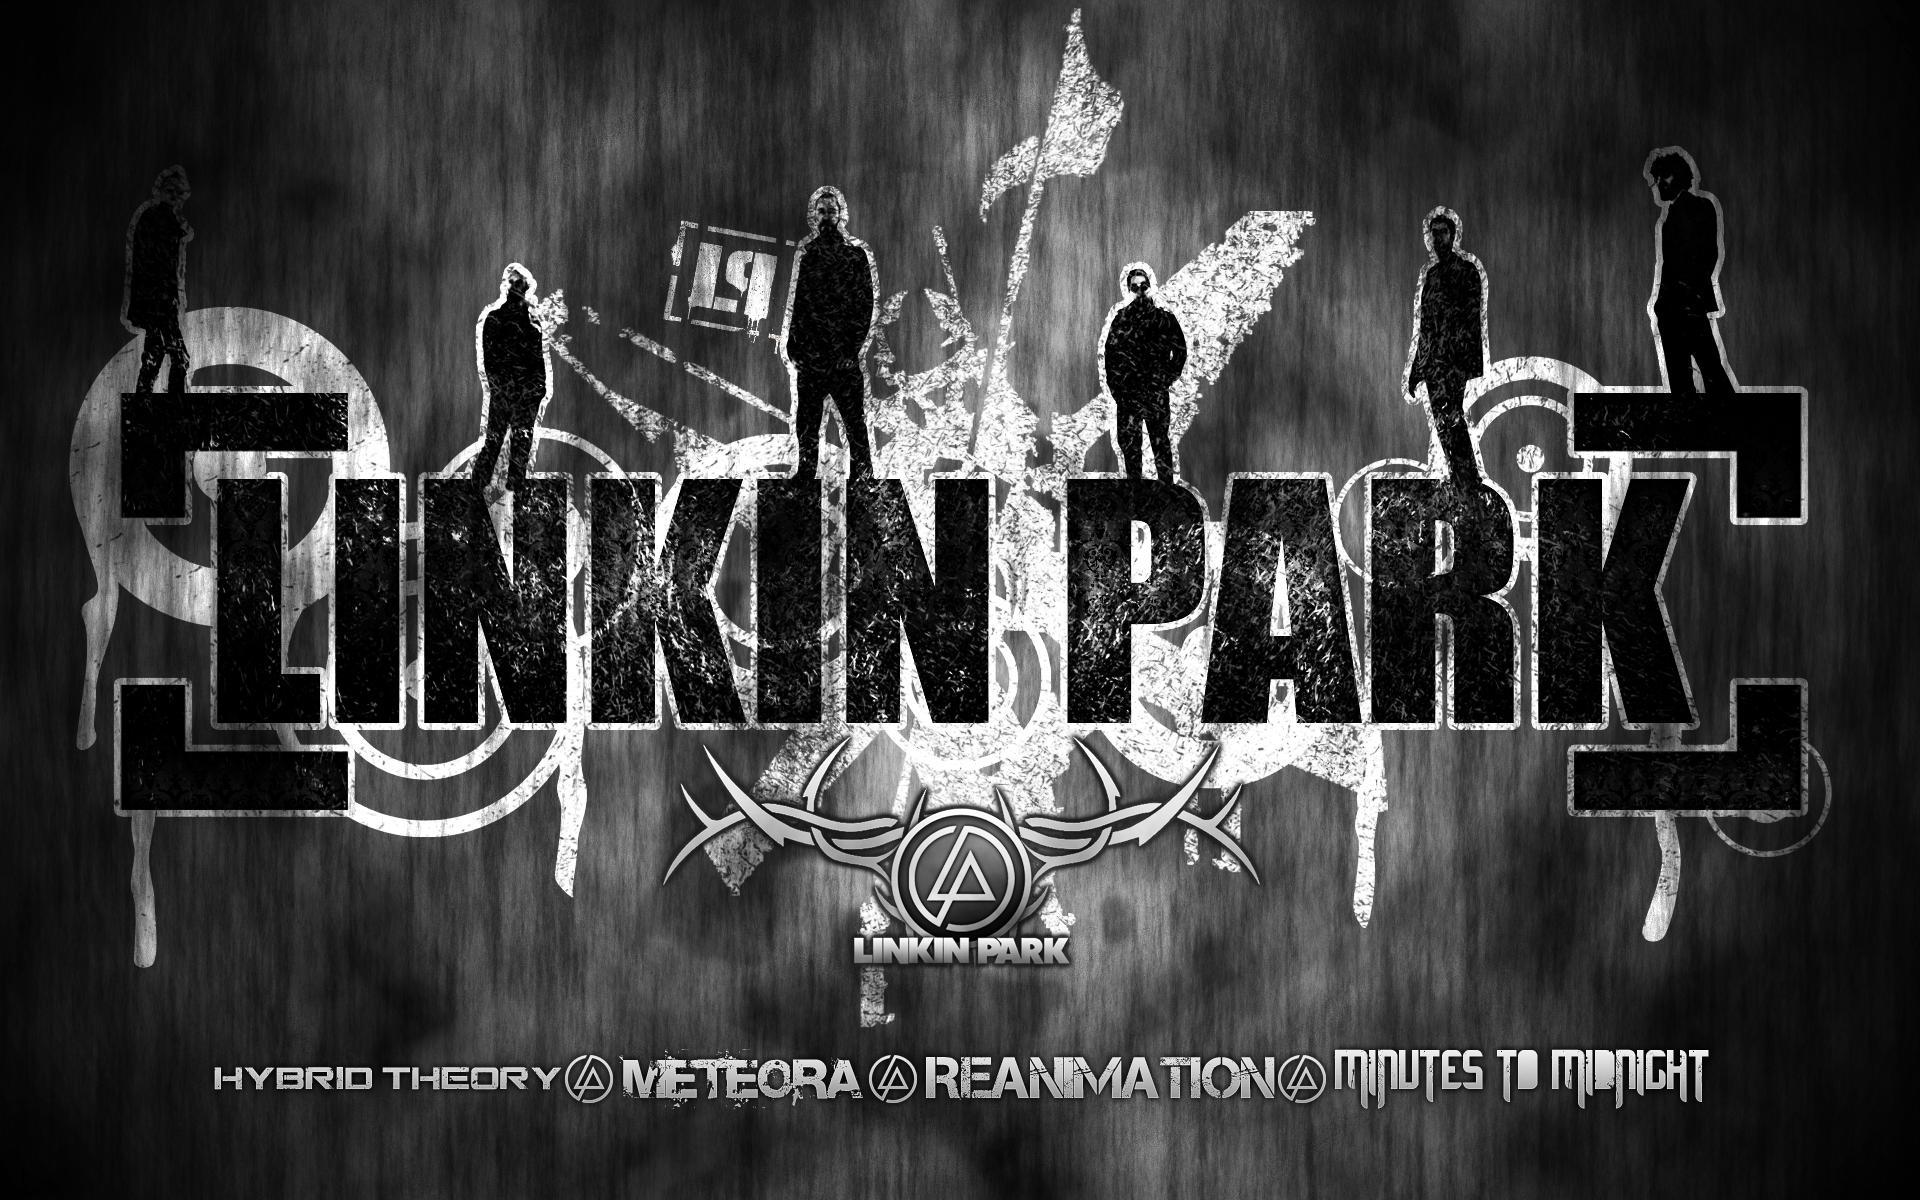 Linkin Park New Divide Wallpapers Wallpaper Cave